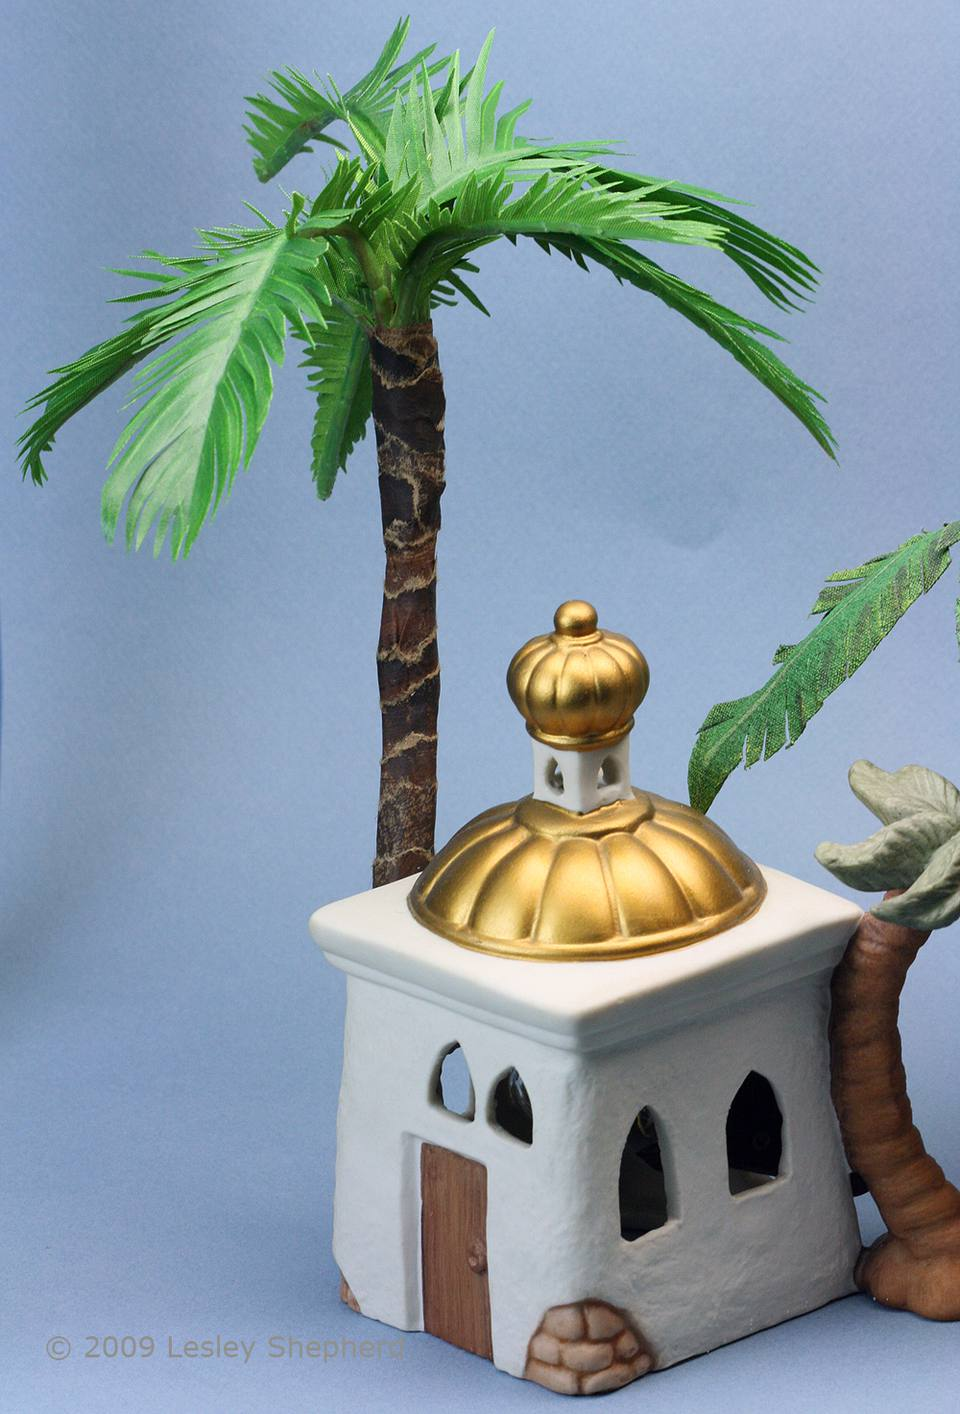 Scale miniature palm tree set behind a porcelain building in a Christmas Nativity set.